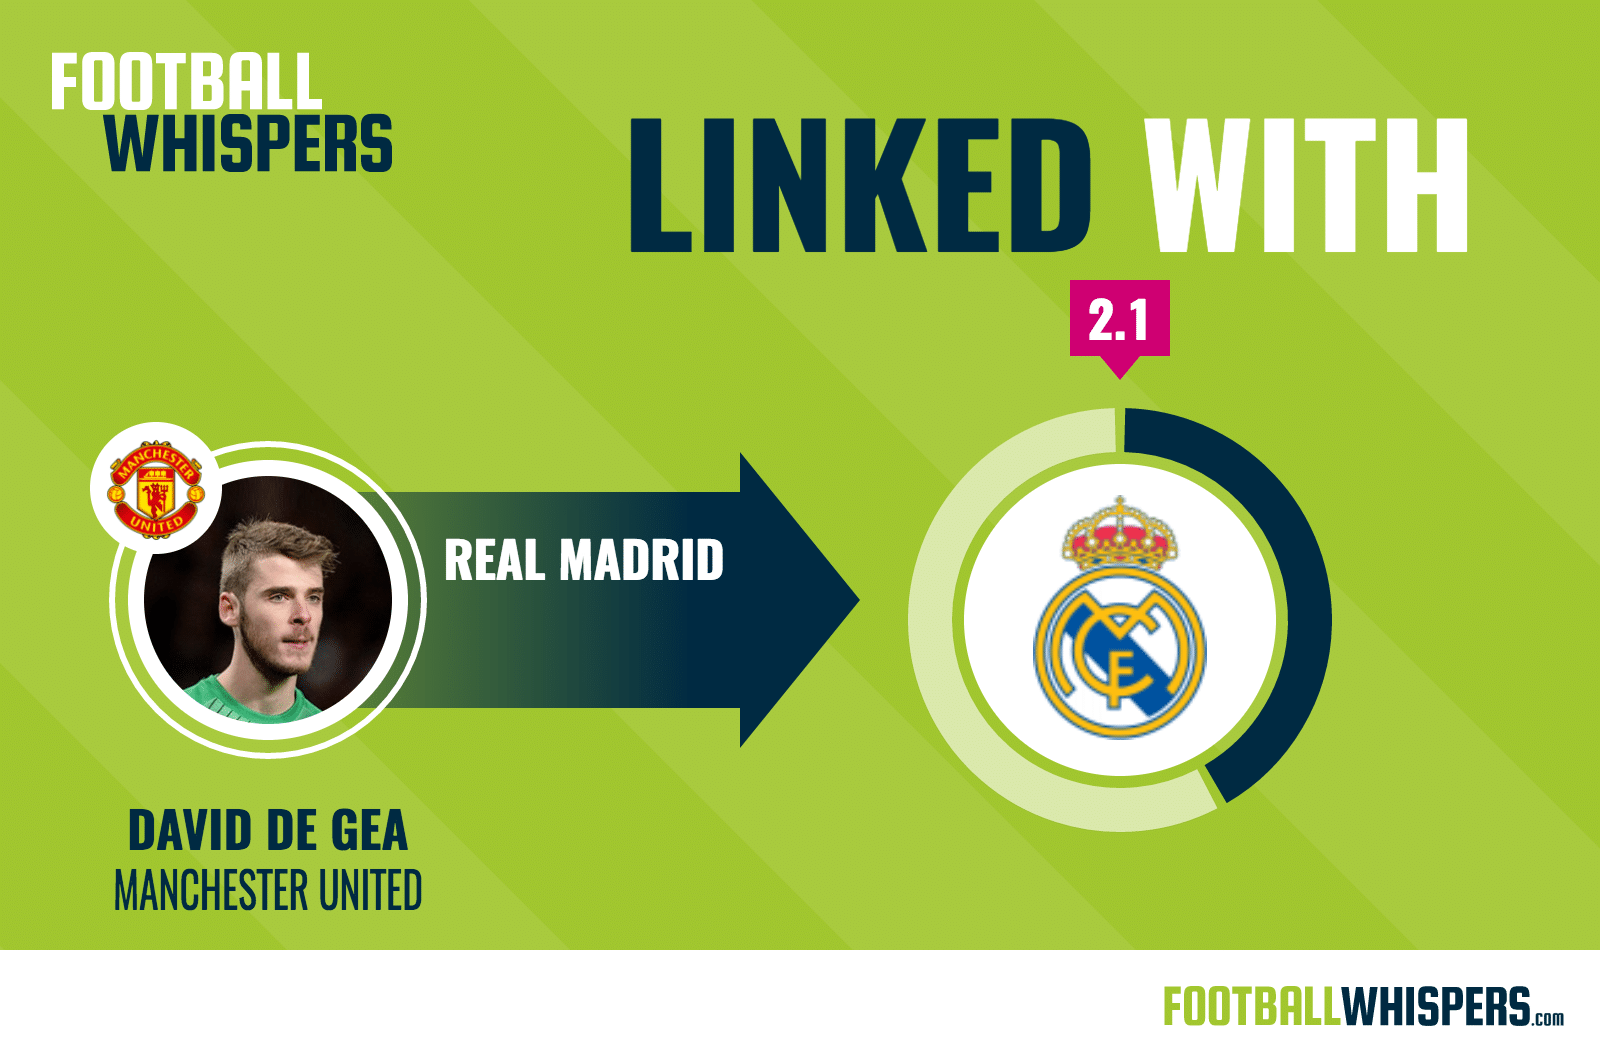 David De Gea linked to Real Madrid